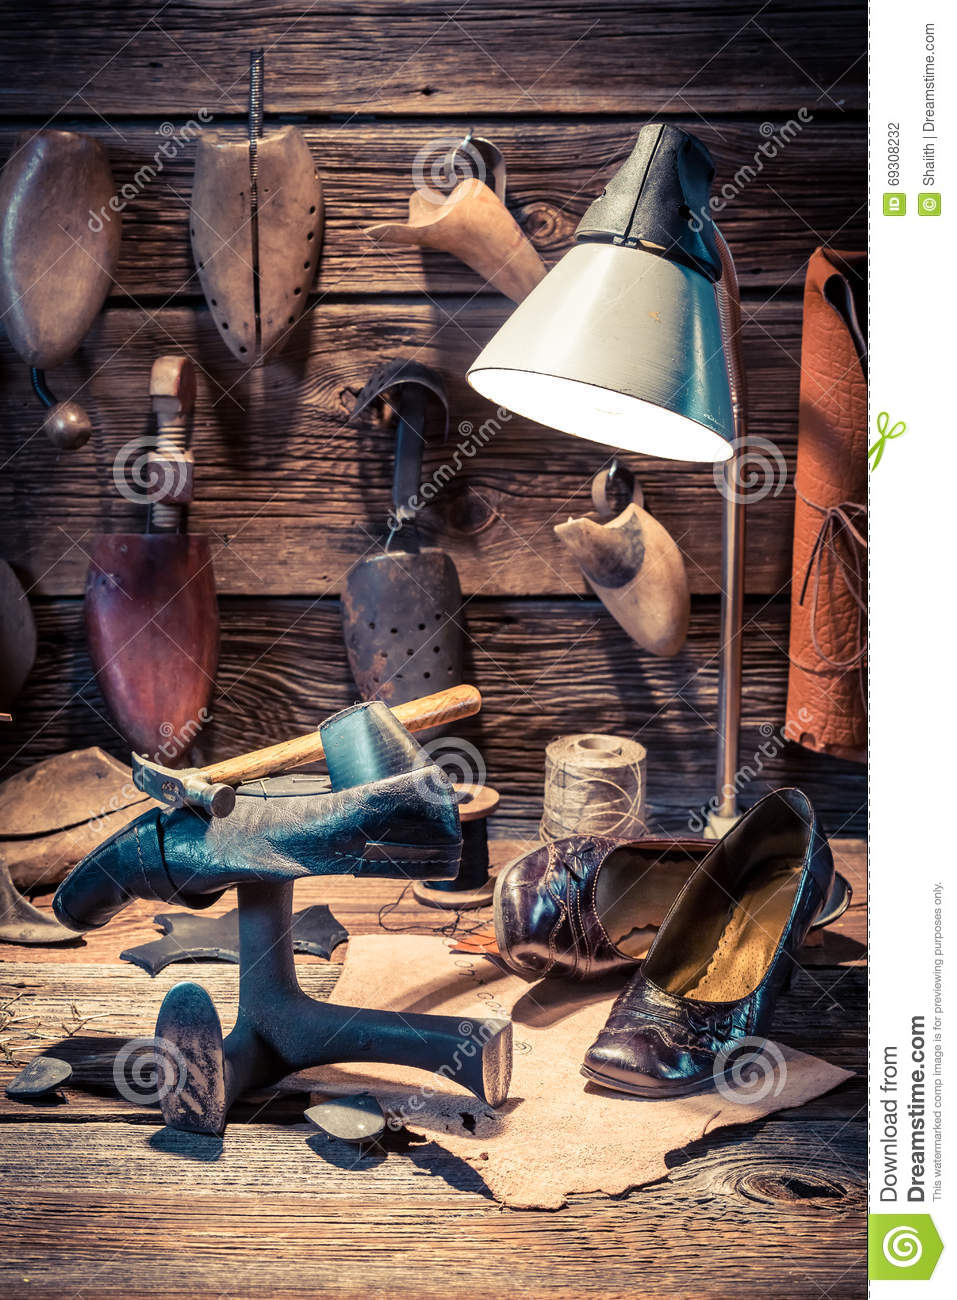 Vintage Picture Shoe Maker Leather